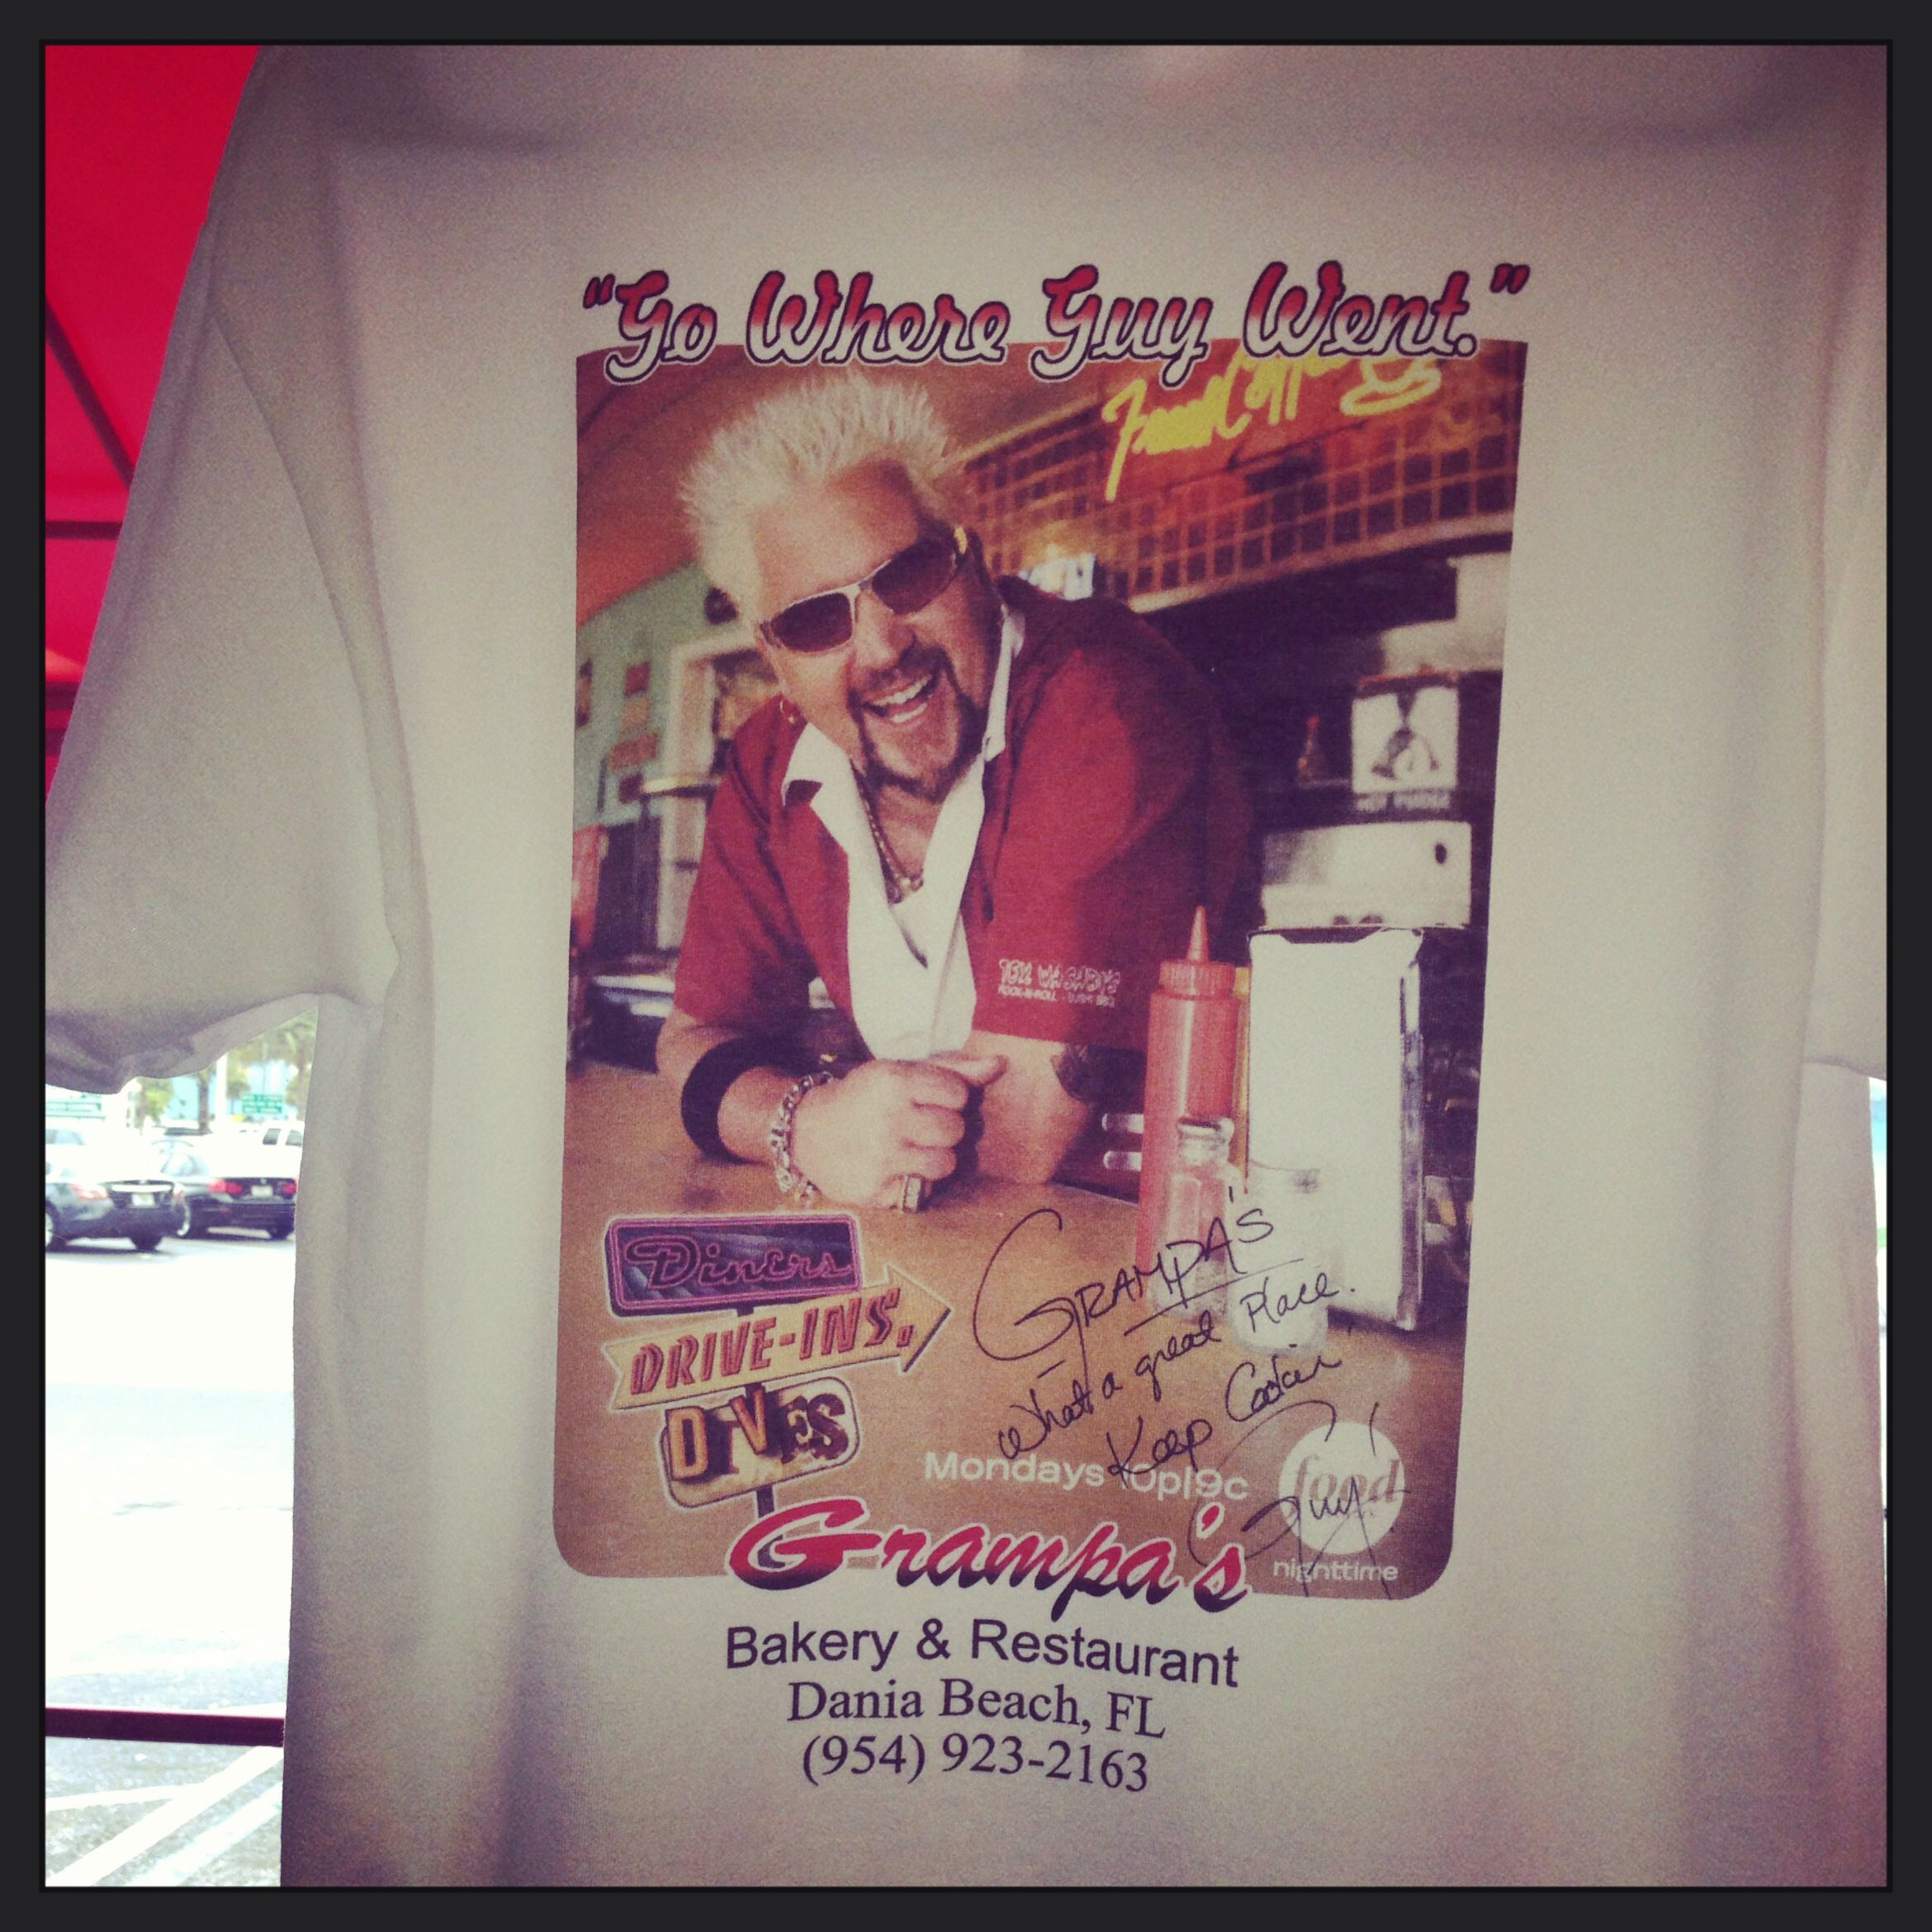 Grampa's in Dania Beach, Florida we went after we saw on